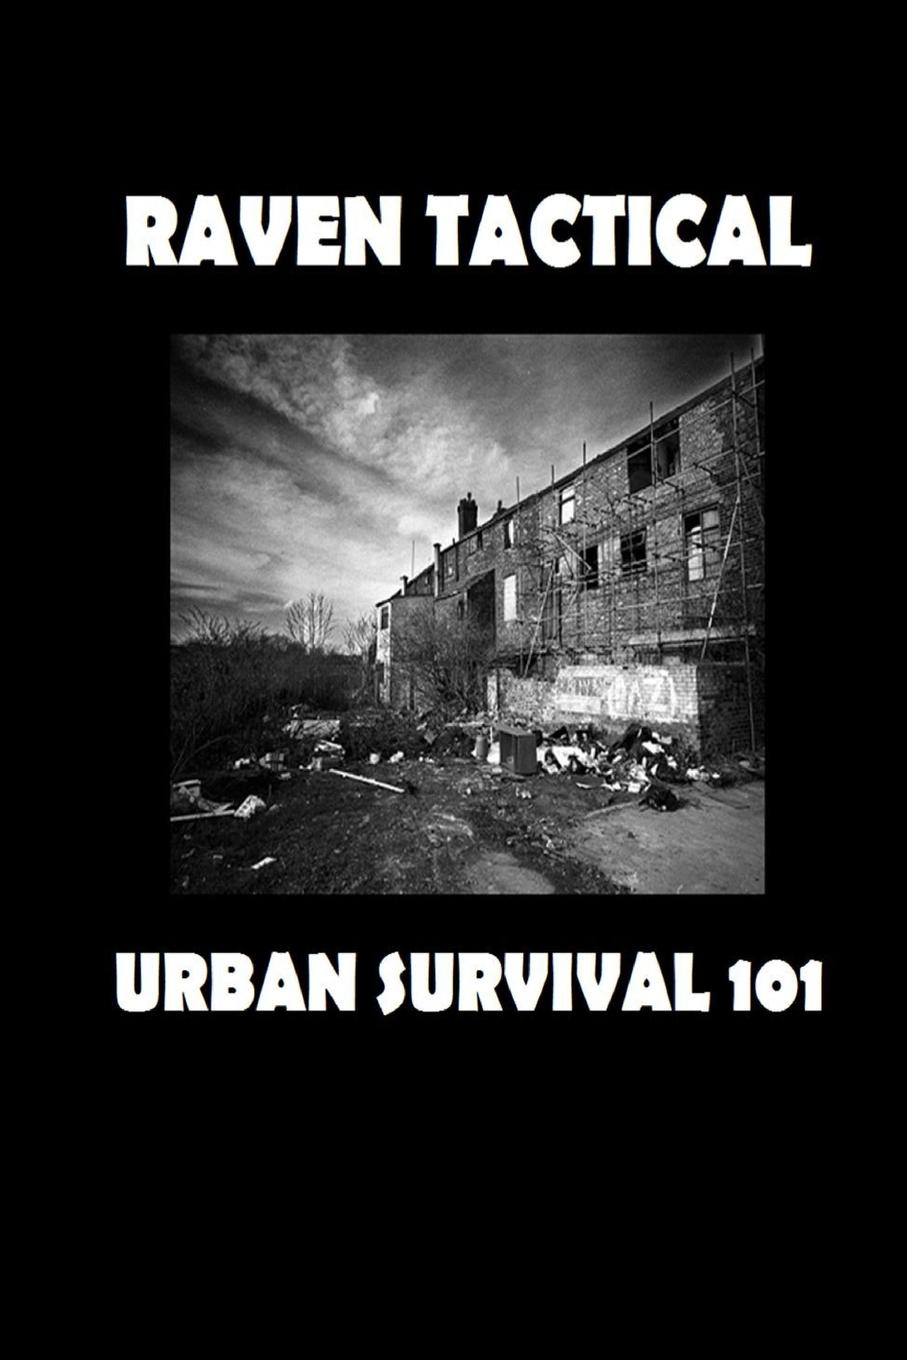 Raven Tactical Urban Survival 101 new hiking and artificial plush men and women special operations military training boots outdoor survival hiking boots size35 48